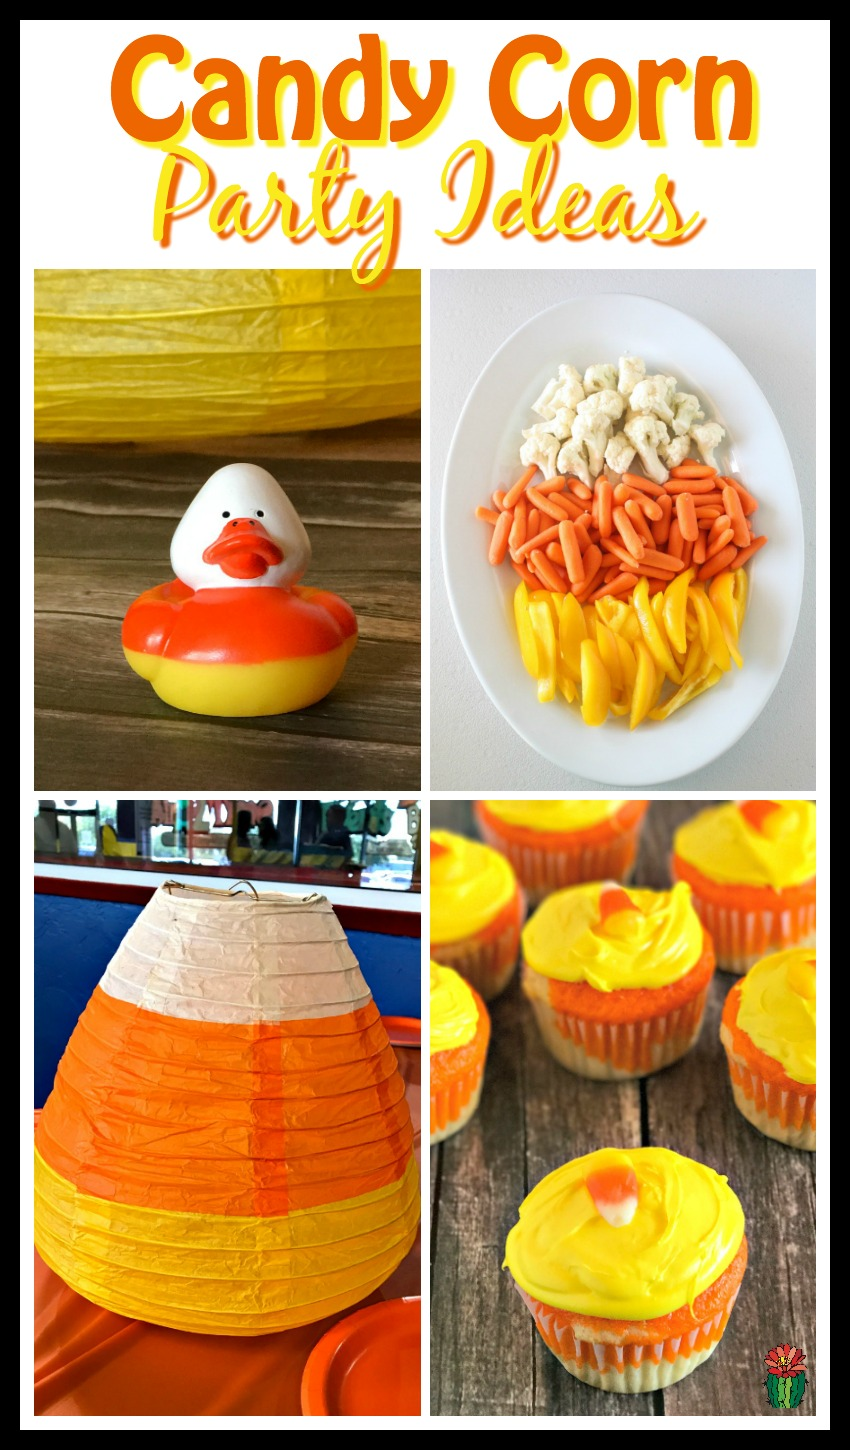 A candy corn party is a perfect theme for Halloween parties, Fall festivals or birthday parties for the super candy corn fan in your life! Don't miss these easy candy corn party ideas including food and decorations.